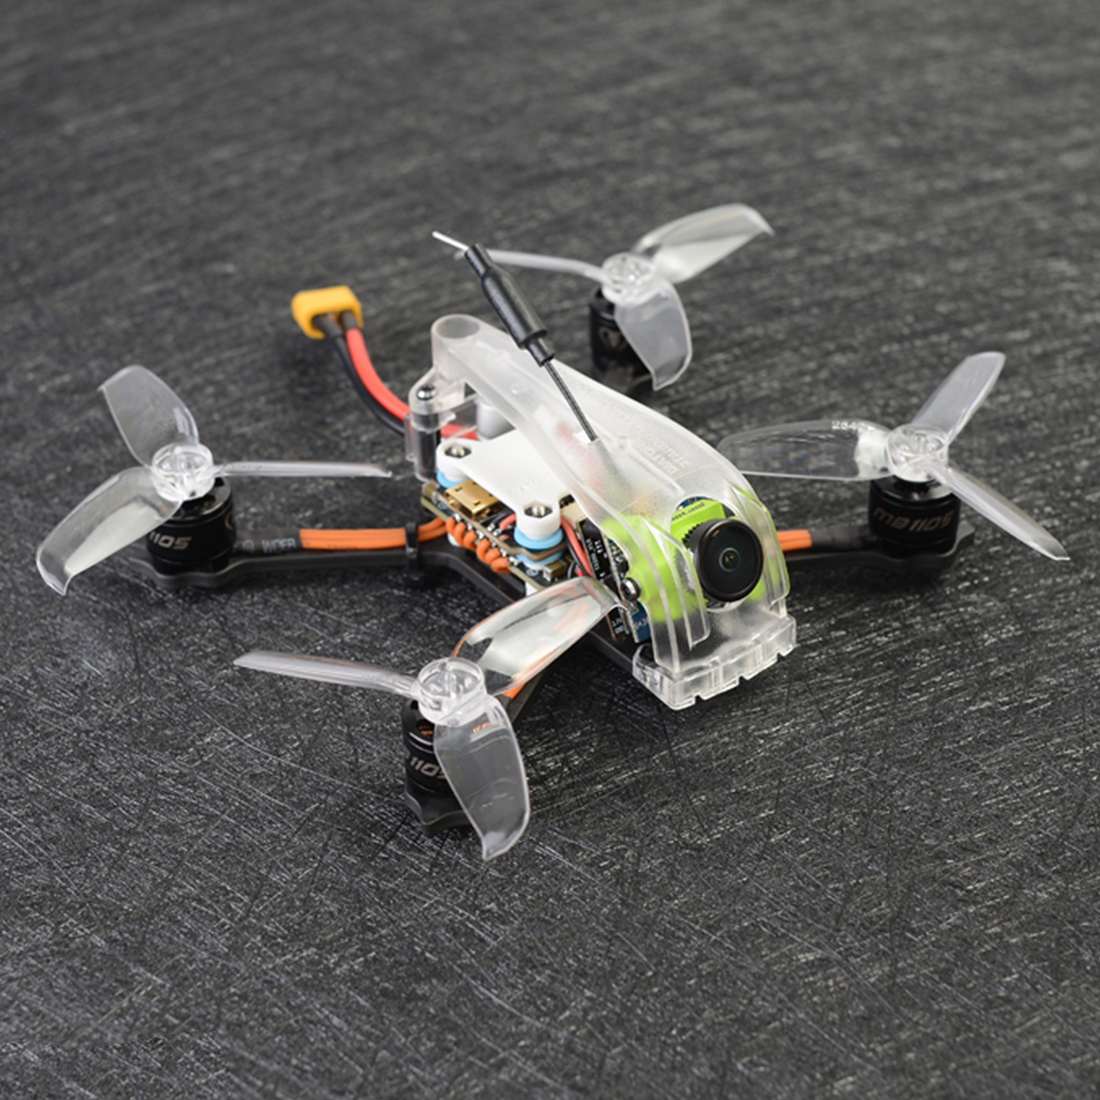 Diatone GTR249+ 115mm PNP 2.5 Inch 4S FPV Racing Drone Quadcopter with <font><b>Mamba</b></font> <font><b>F405</b></font> <font><b>Mini</b></font> Flight Control F25 4 in 1 ESC Dshot 600 image